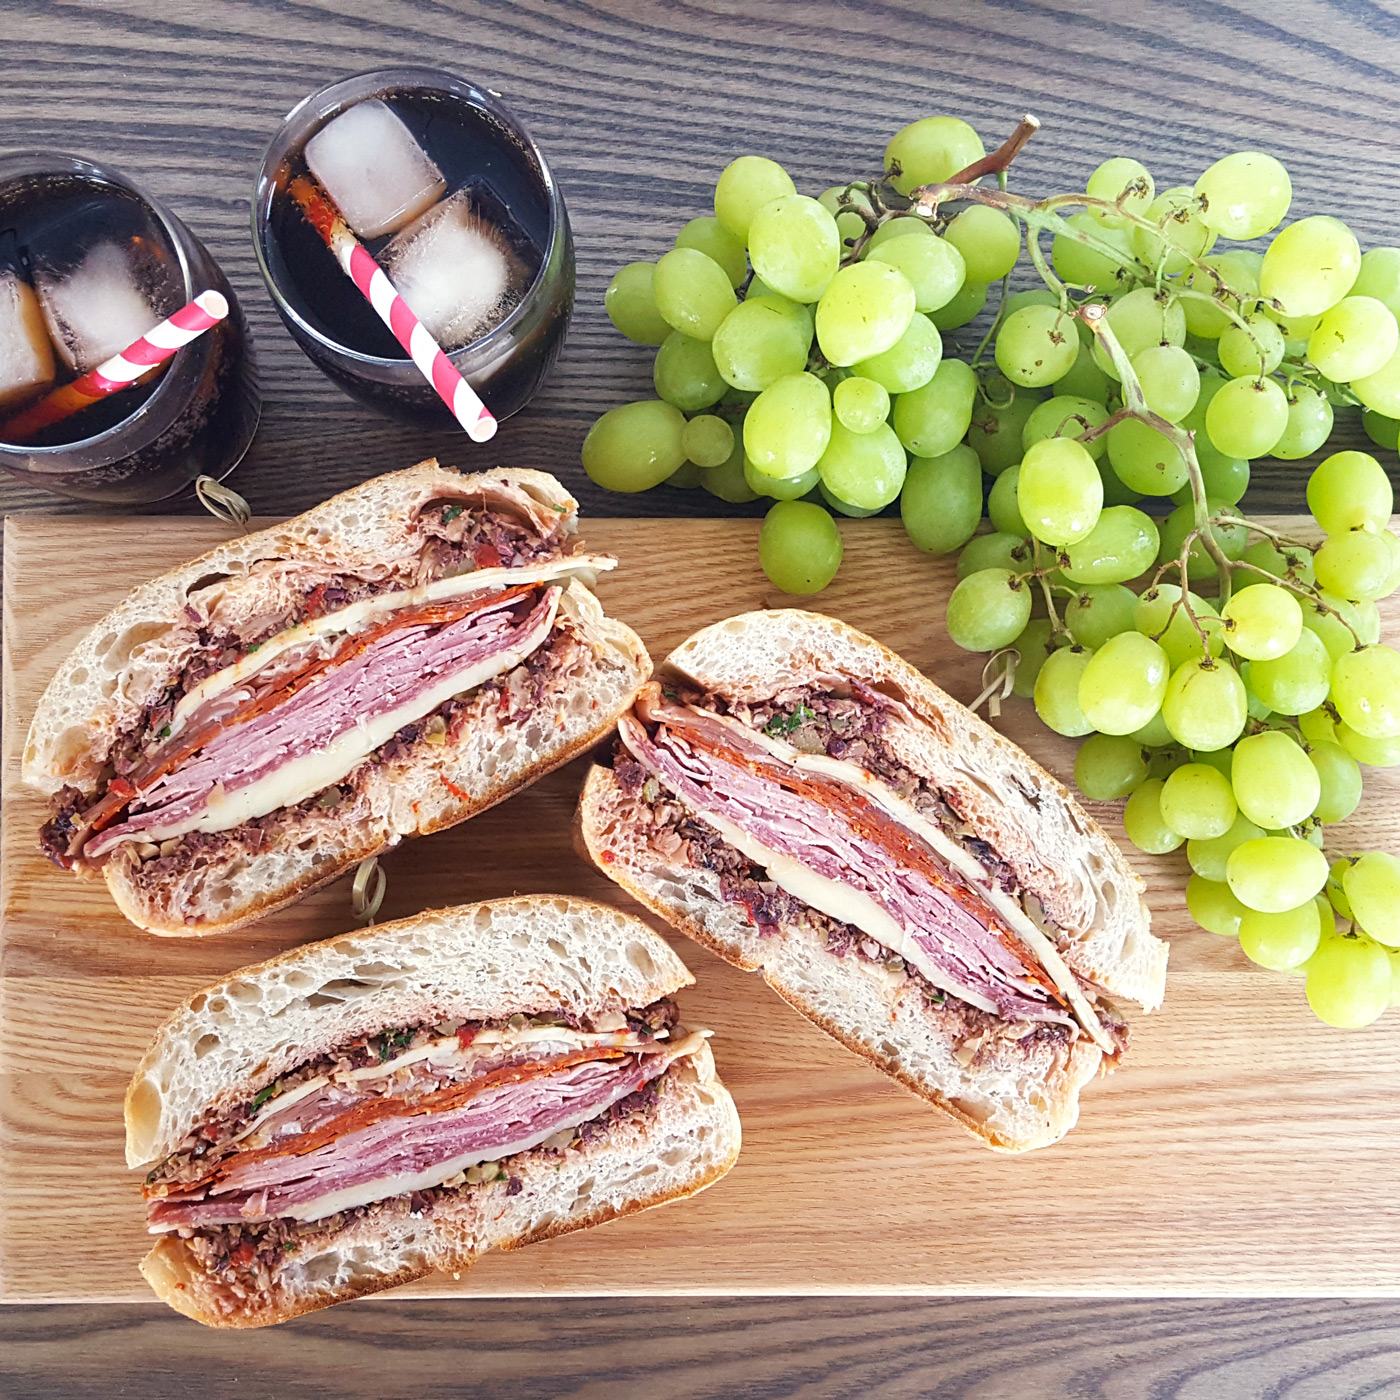 Easy Italian Desserts For A Crowd: Pressed Muffuletta Sandwich For A Crowd & Tips For A